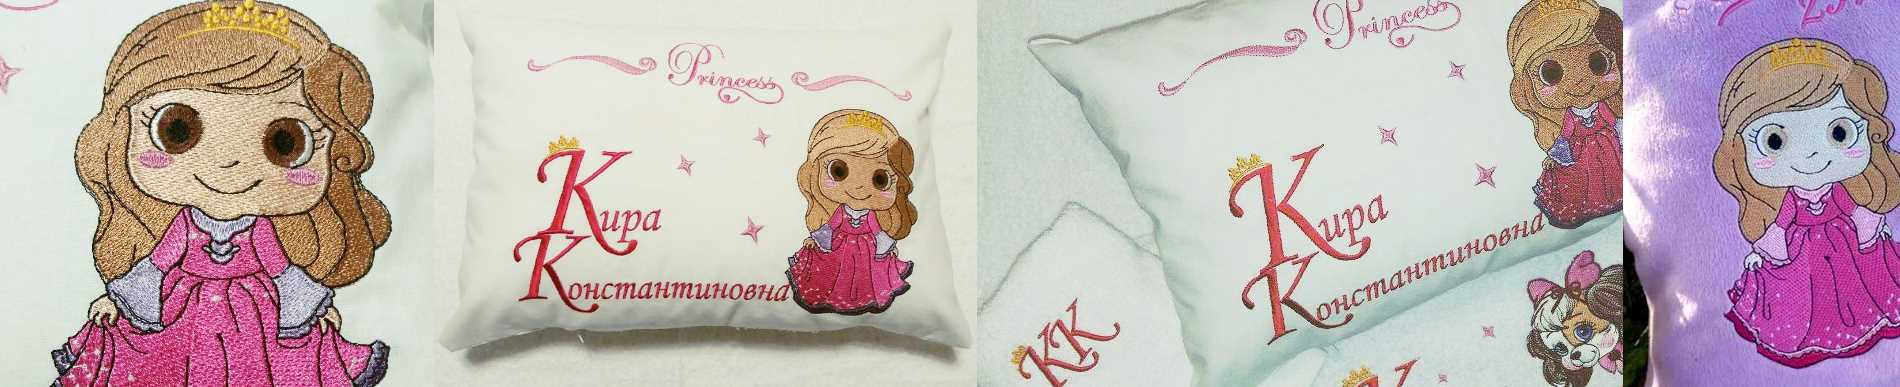 Litle princess embroidery collection